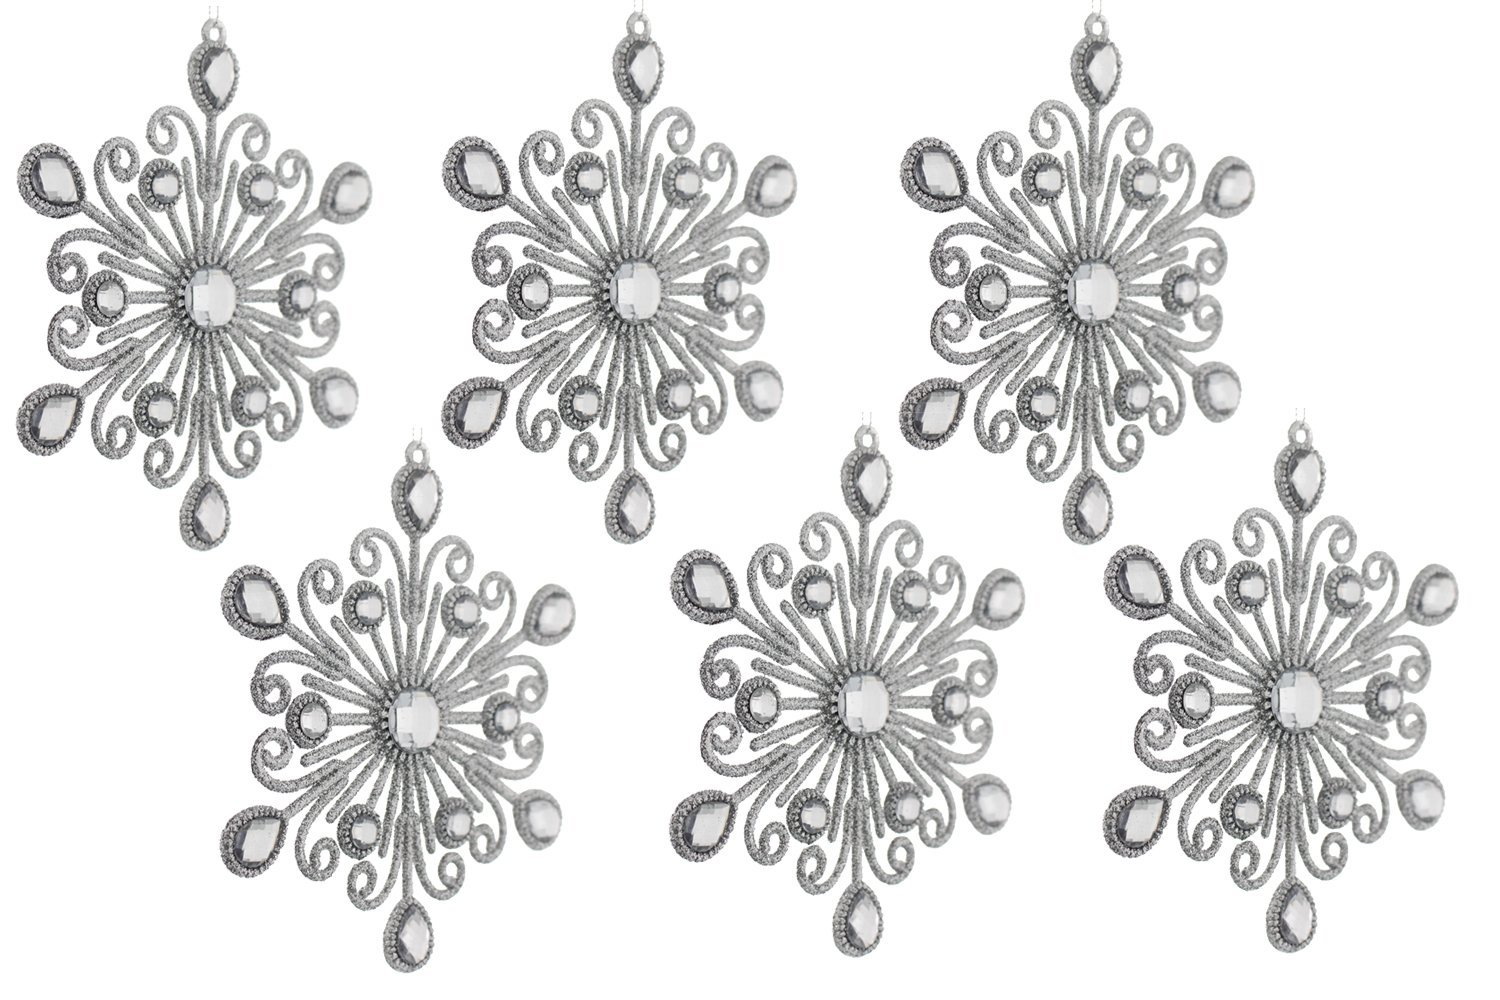 Elegant Fancy Christmas Holiday Shimmering Sparkling Glitter Snowflake Ornaments with Rhinestones, Silver, Medium, 6 Pack, (6 inches)